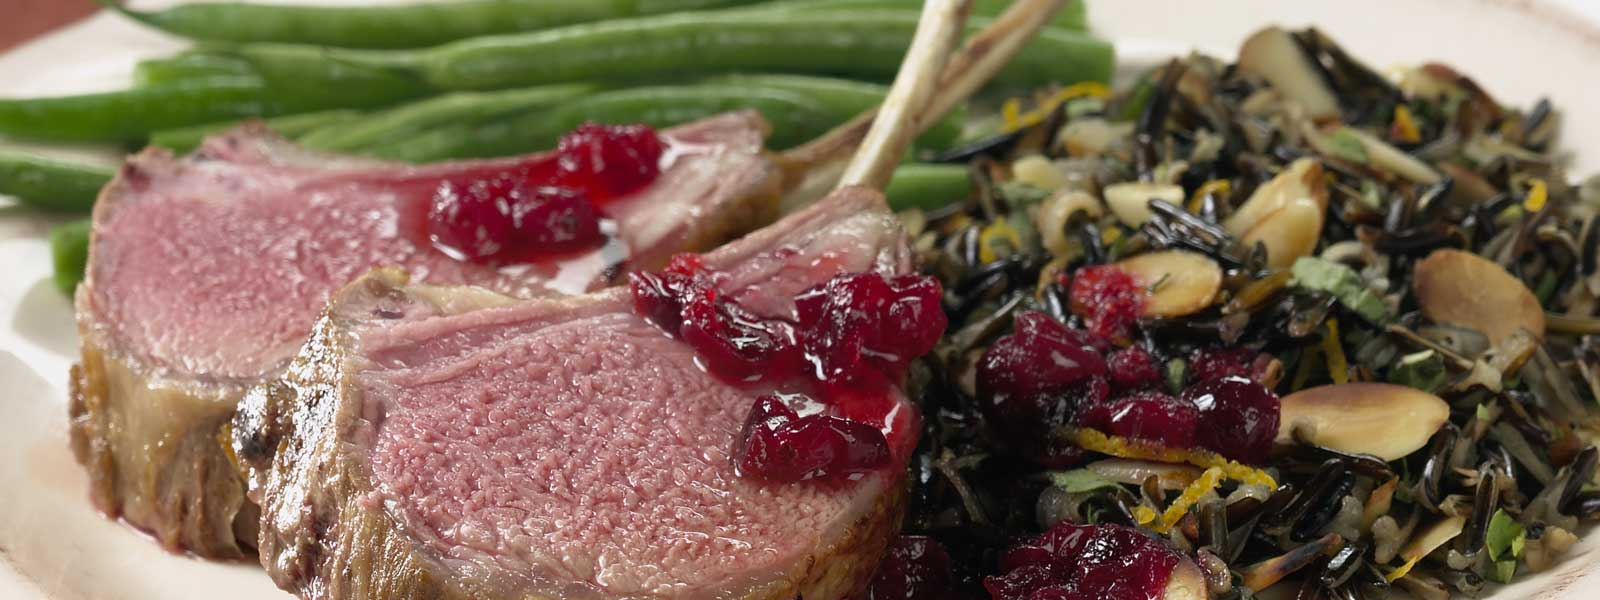 Big Green Egg Cranberry-Marinated Rack of Lamb with Almond Wild Rice